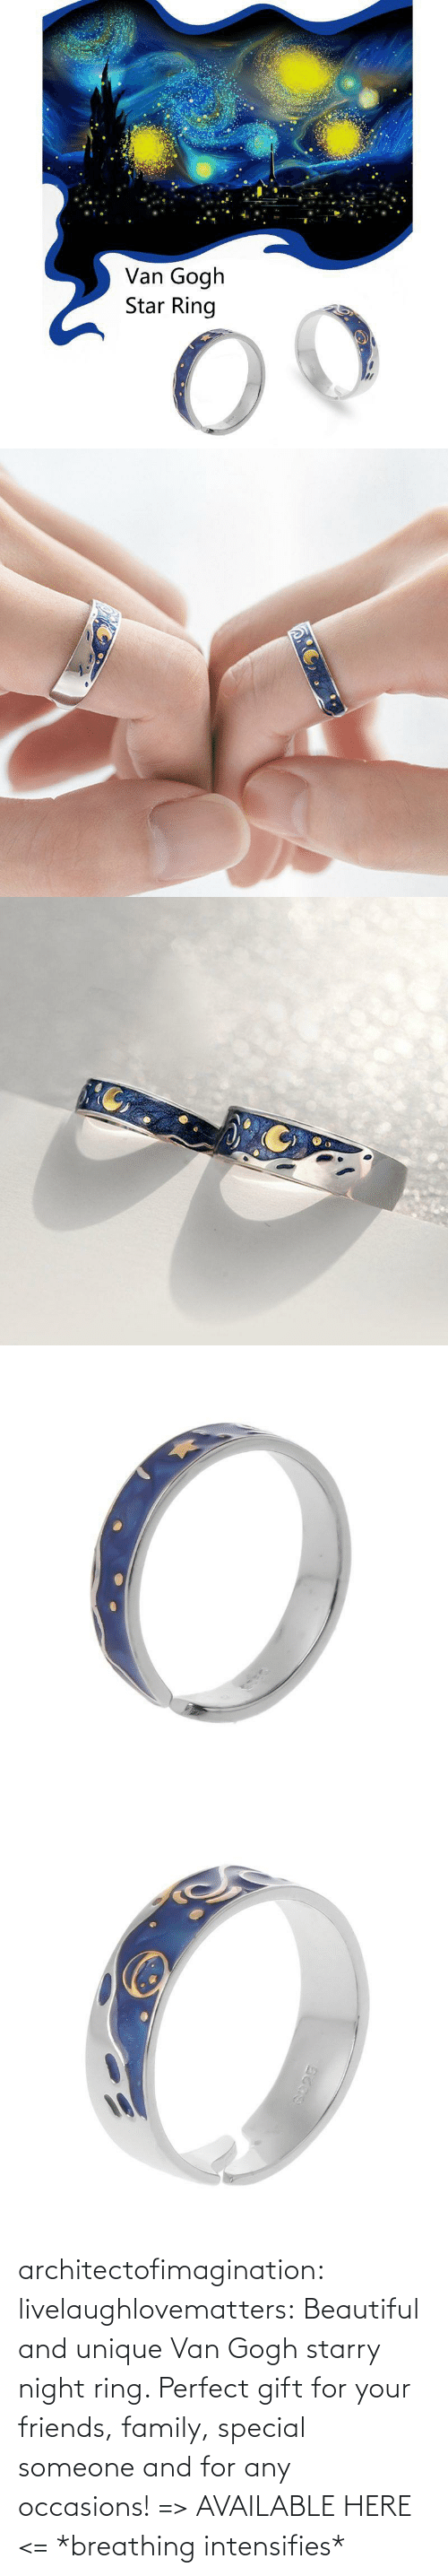 family: architectofimagination:  livelaughlovematters: Beautiful and unique Van Gogh starry night ring. Perfect gift for your friends, family, special someone and for any occasions! => AVAILABLE HERE <=    *breathing intensifies*